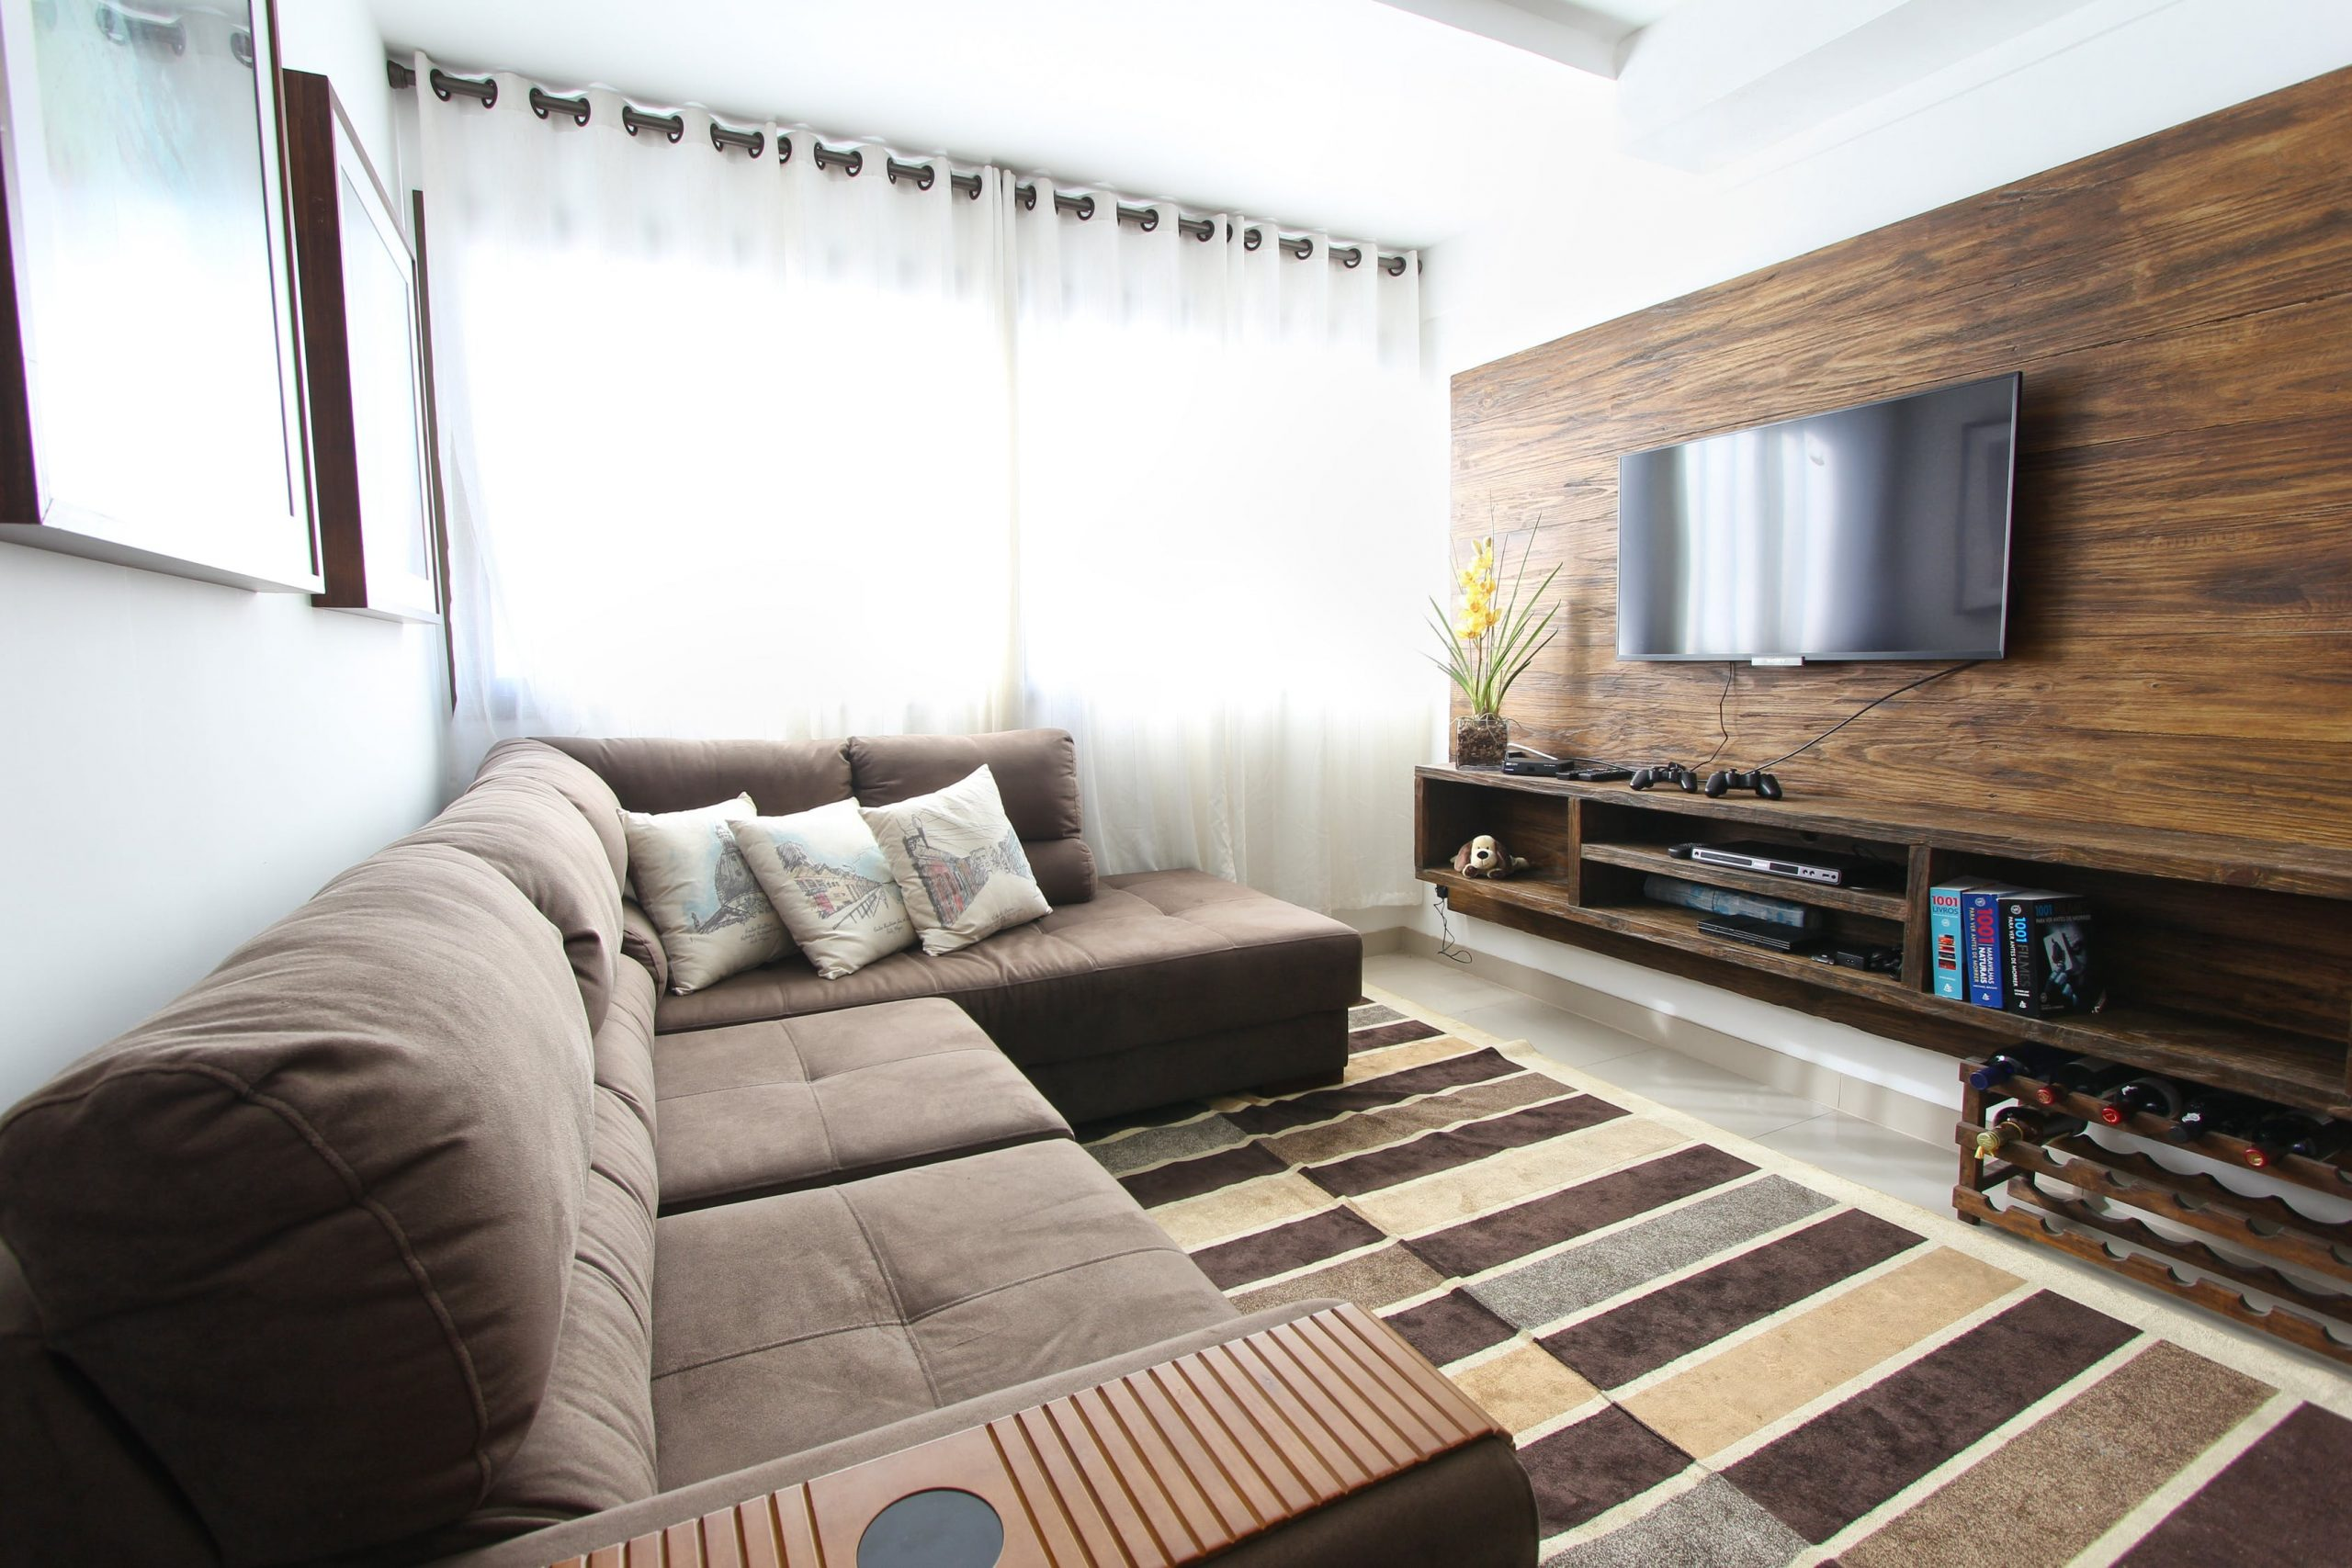 curtains-benefits-reduce-tv-glare-curtains-house-singapore